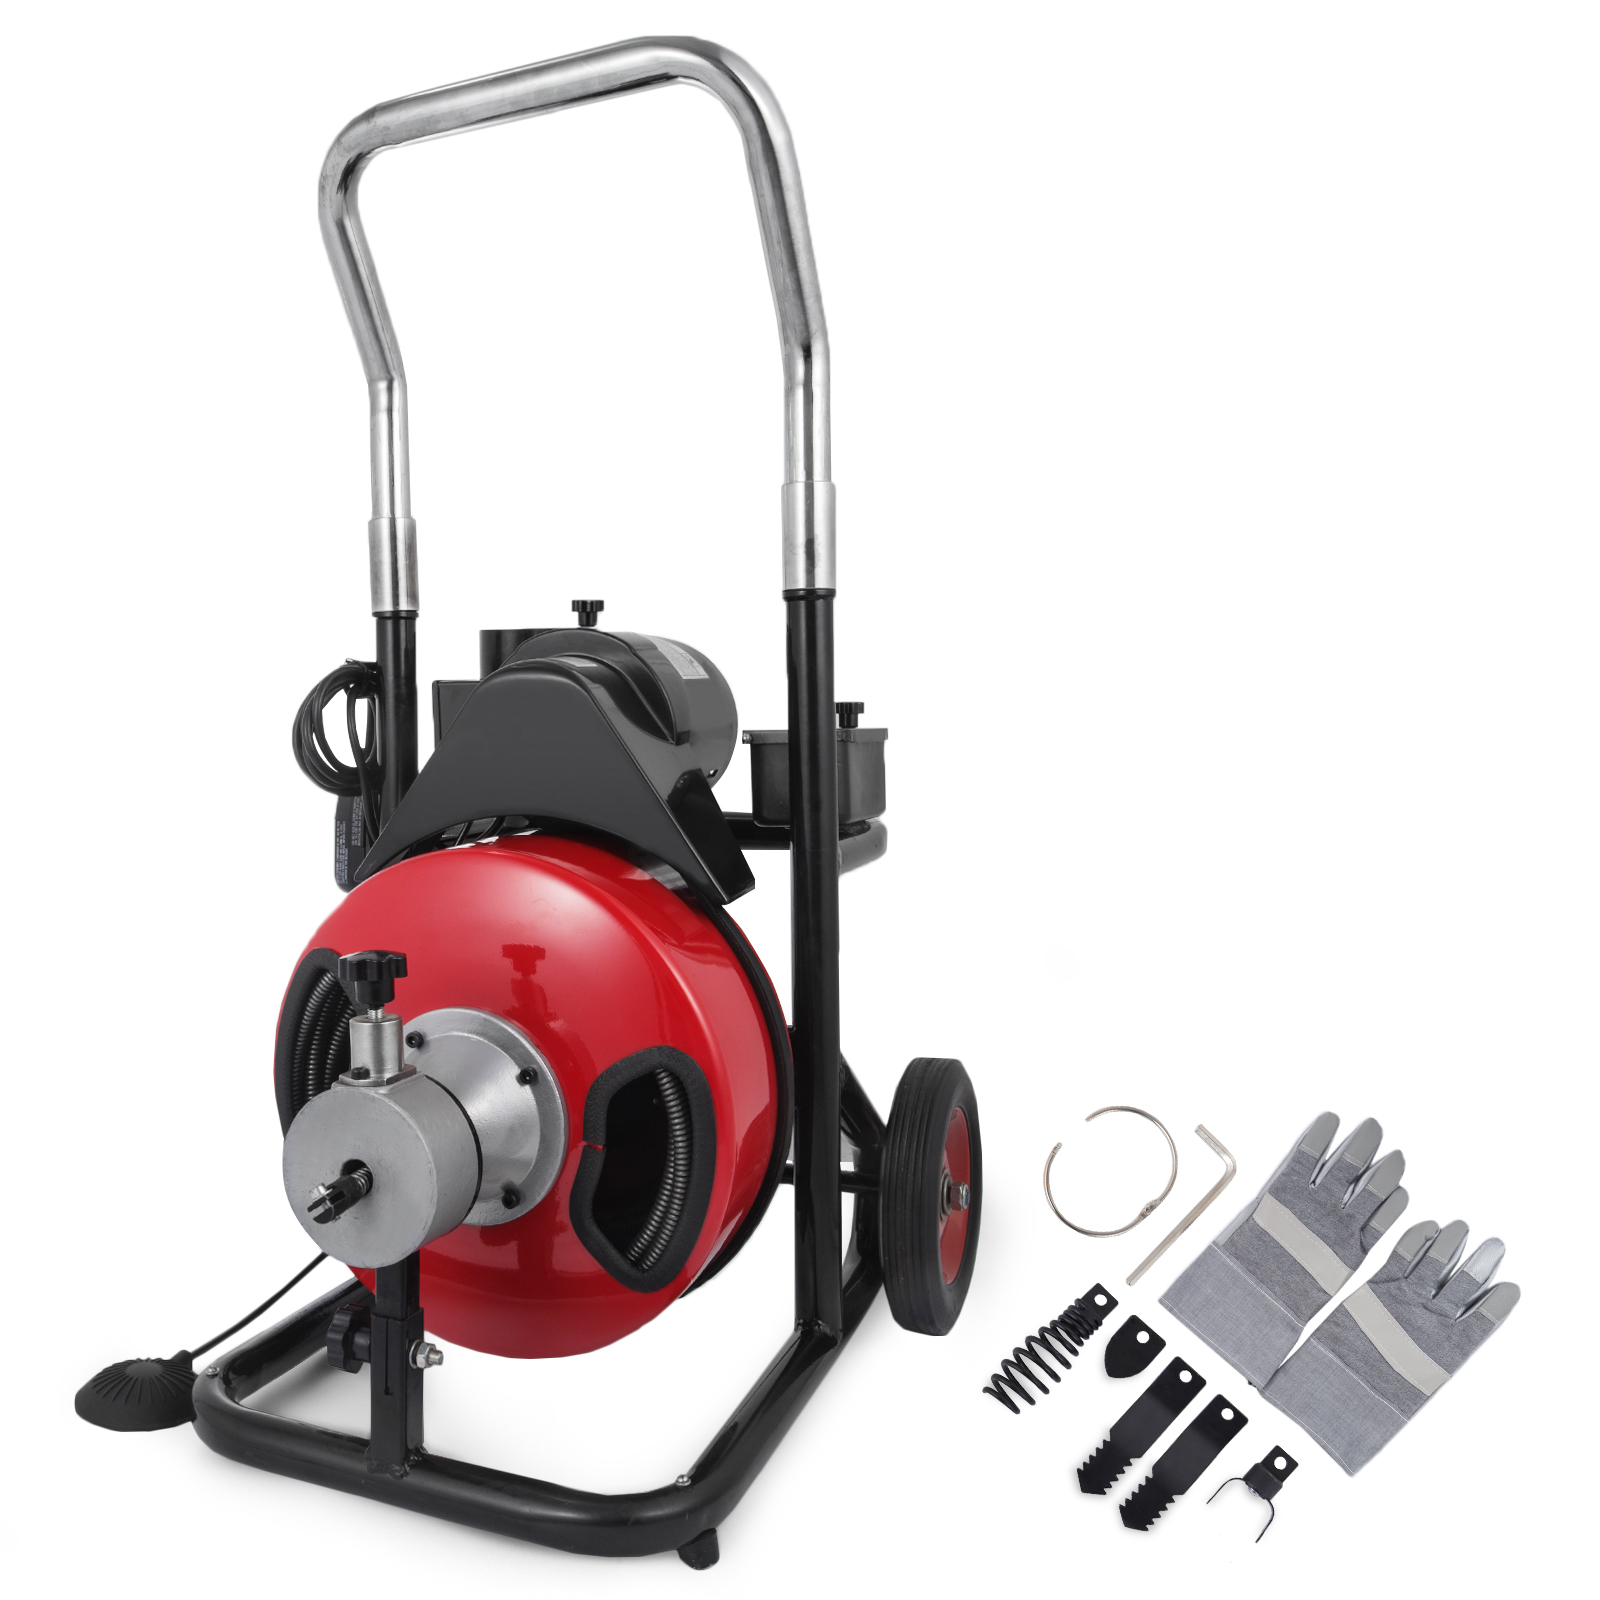 """BestEquip Sewer Snake Drill Drain Auger Cleaner 50 Ft Long 1/2'' Wide Electric Drain Cleaning Machine 4 Cutter & Foot Switch Drain Cleaner Drum Auger Snake for 2"""" to 4"""" Pipes"""